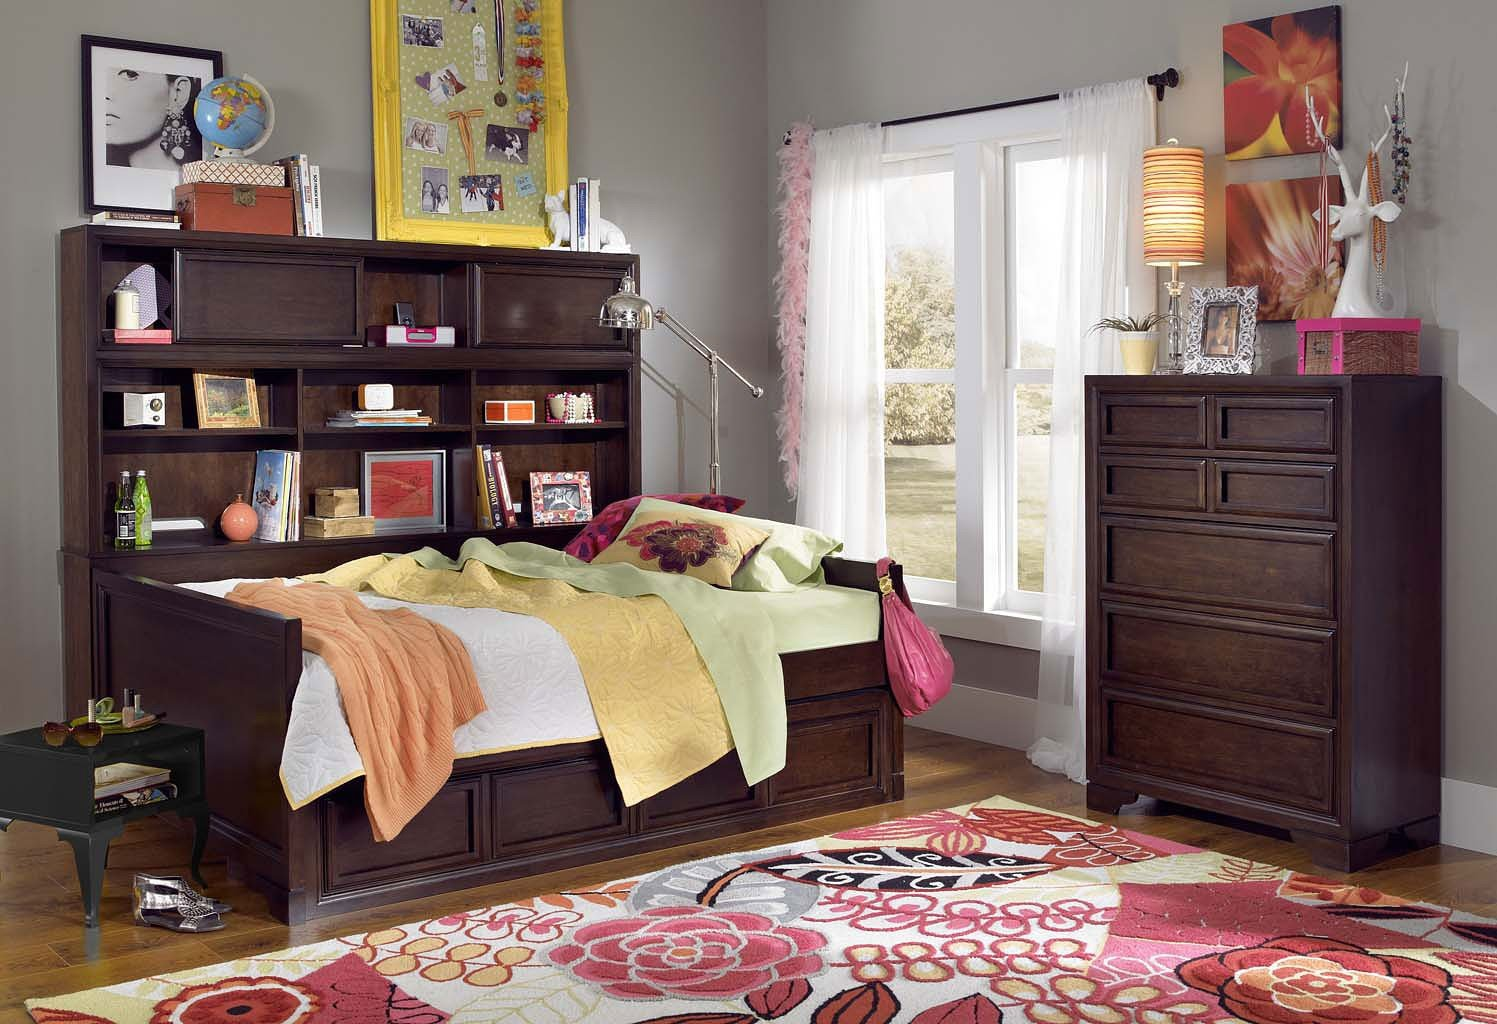 Benchmark Bookcase Daybed Bedroom Set